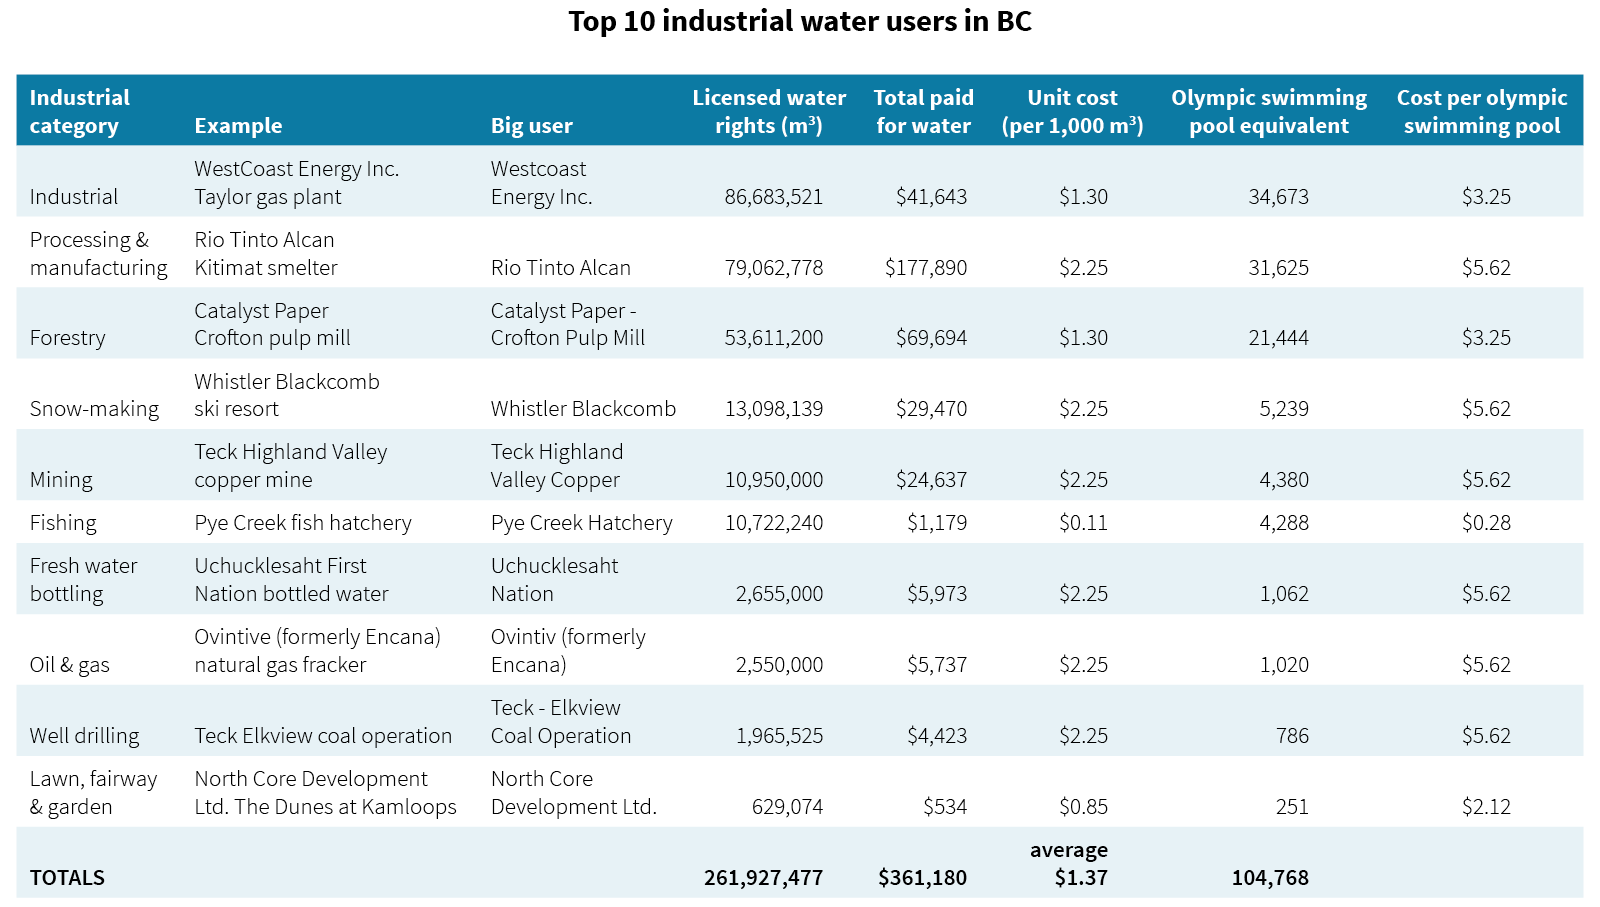 Table: Top 10 industrial water users in BC